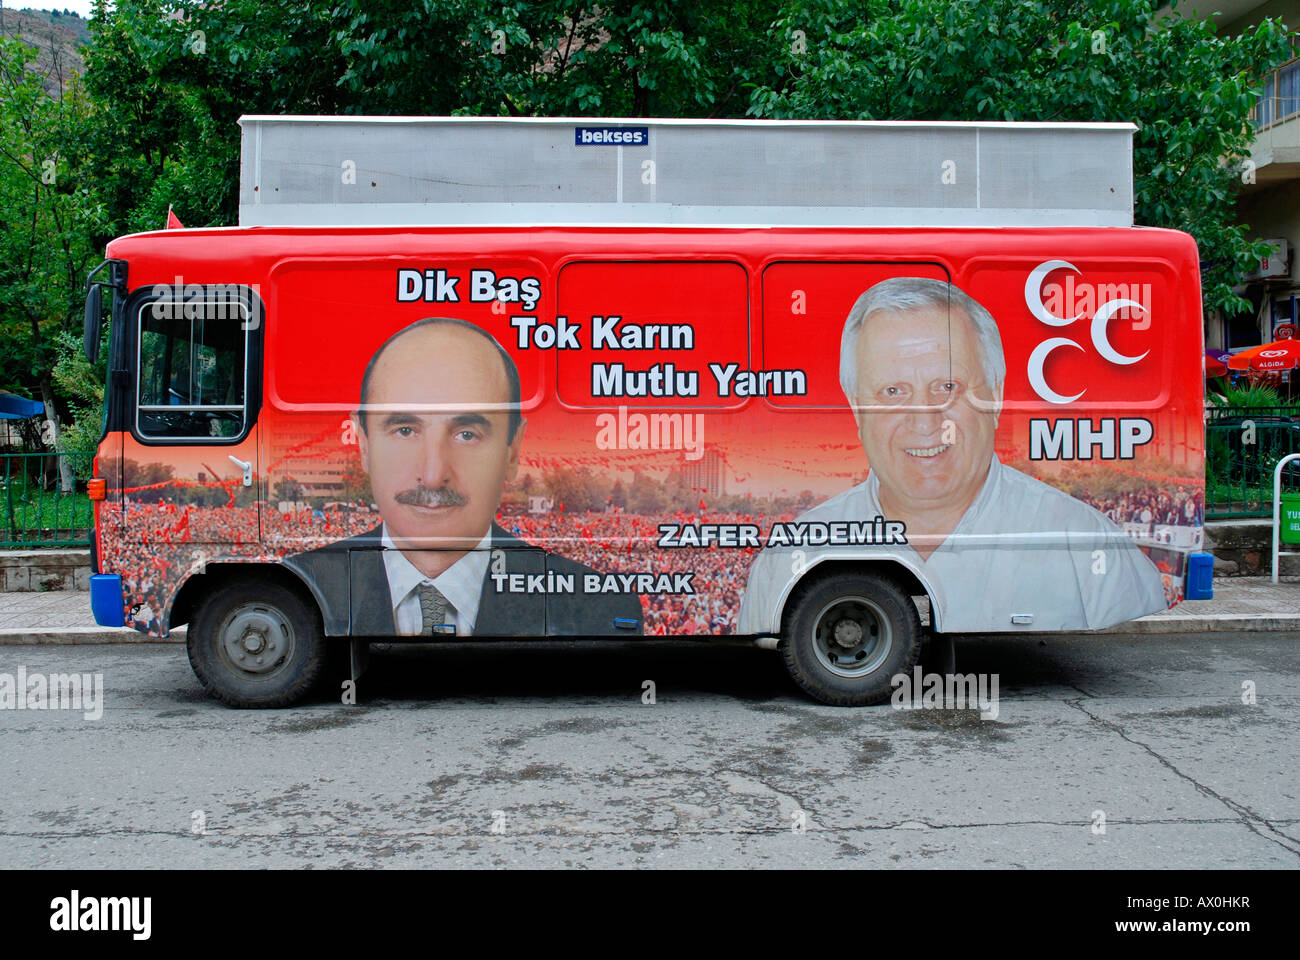 Election advertisements, candidates of the right wing MHP, Urfa, Anatolia, Turkey - Stock Image